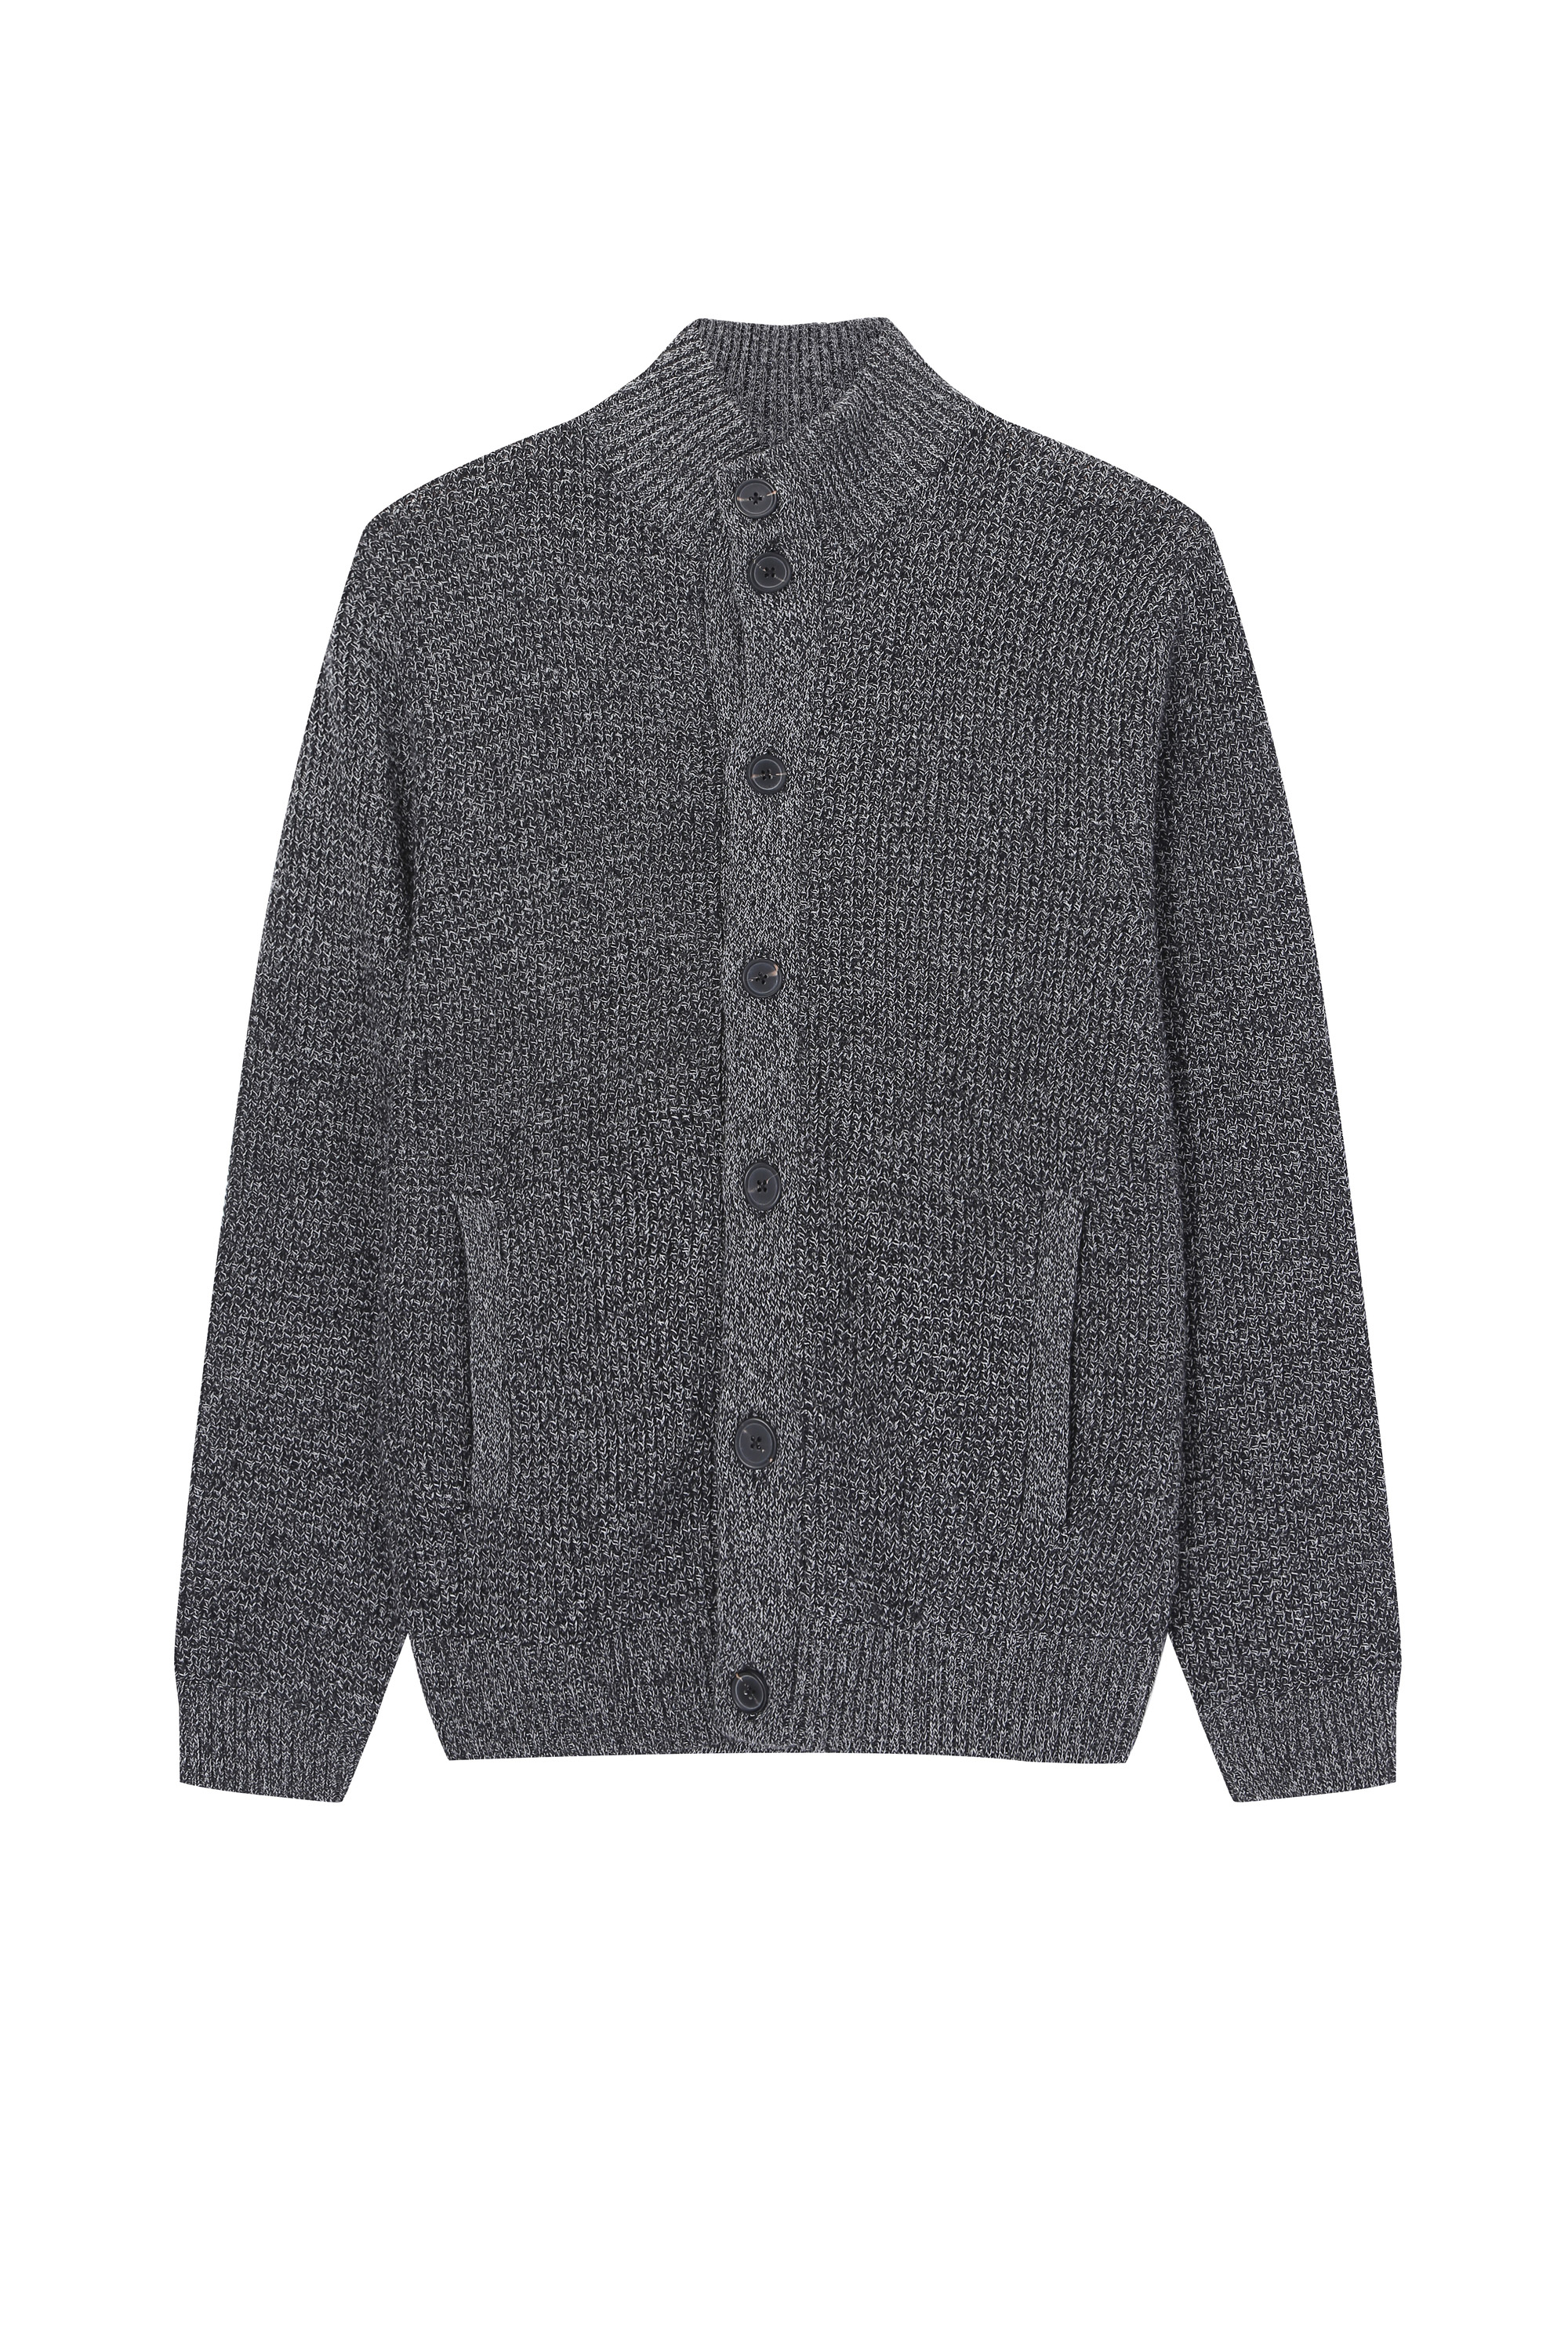 Men's Stand collar Rib Knitted Cardigan with front pocktes